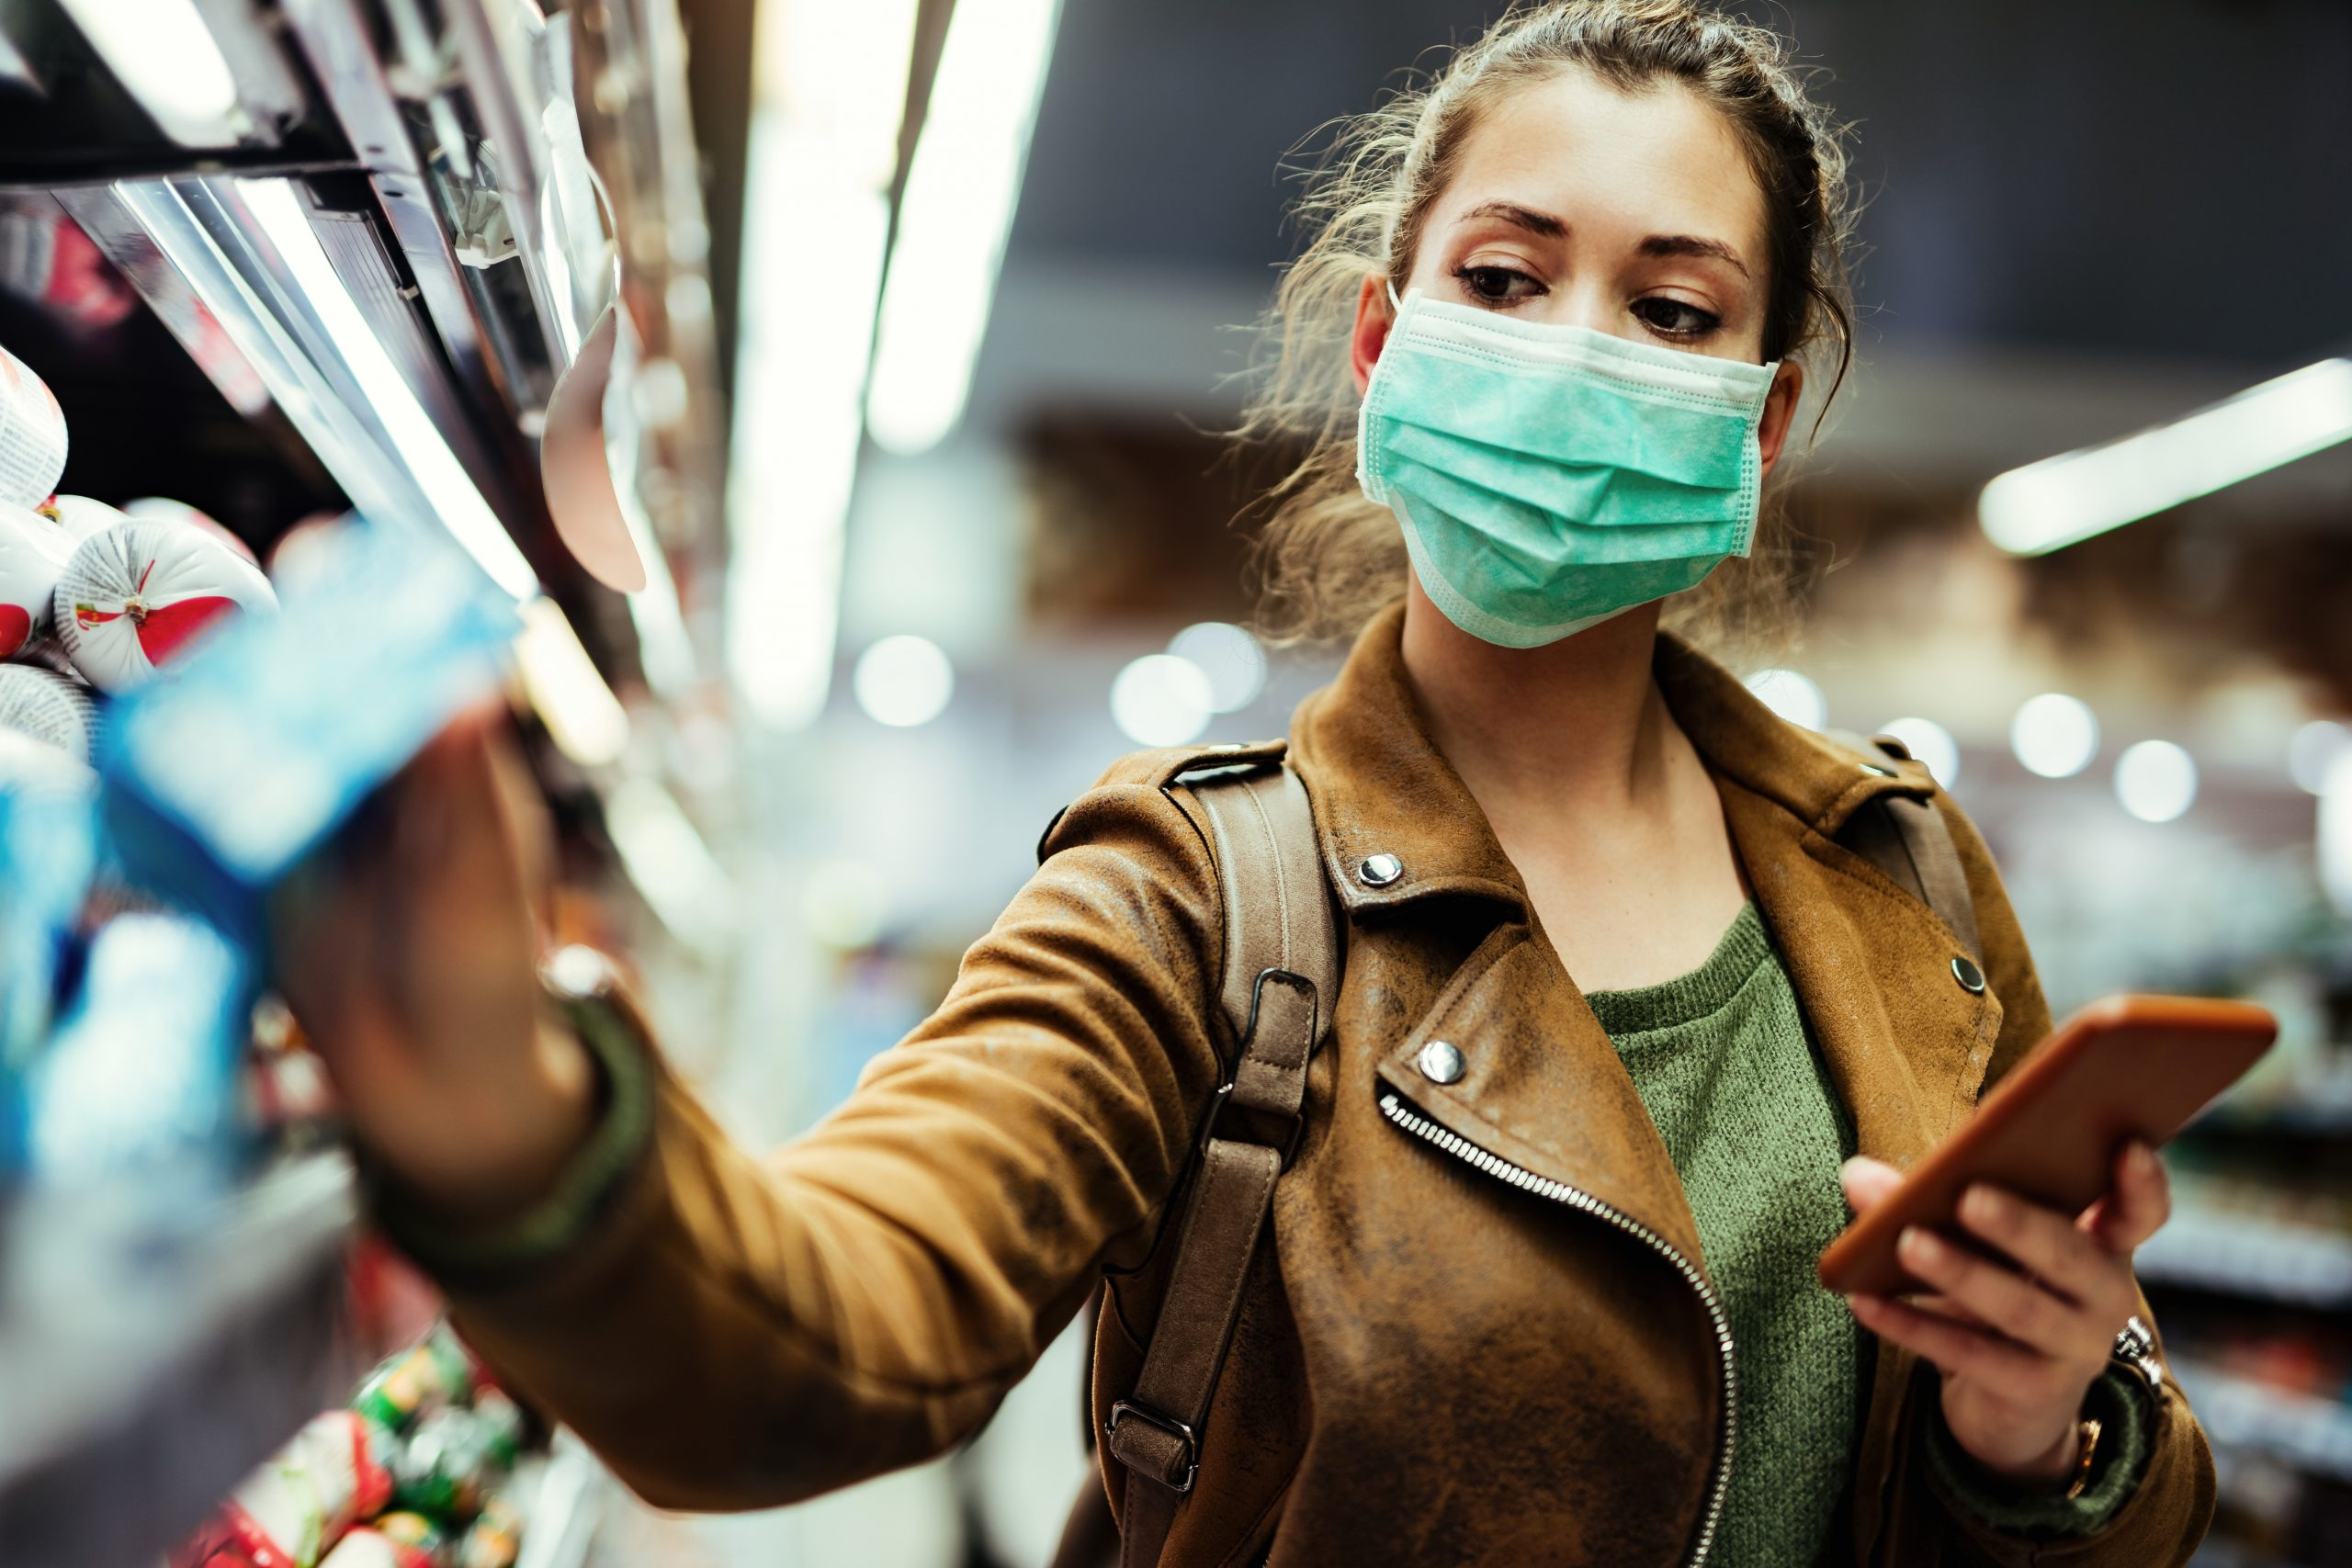 Wearing masks in supermarkets may help people to buy healthier foods